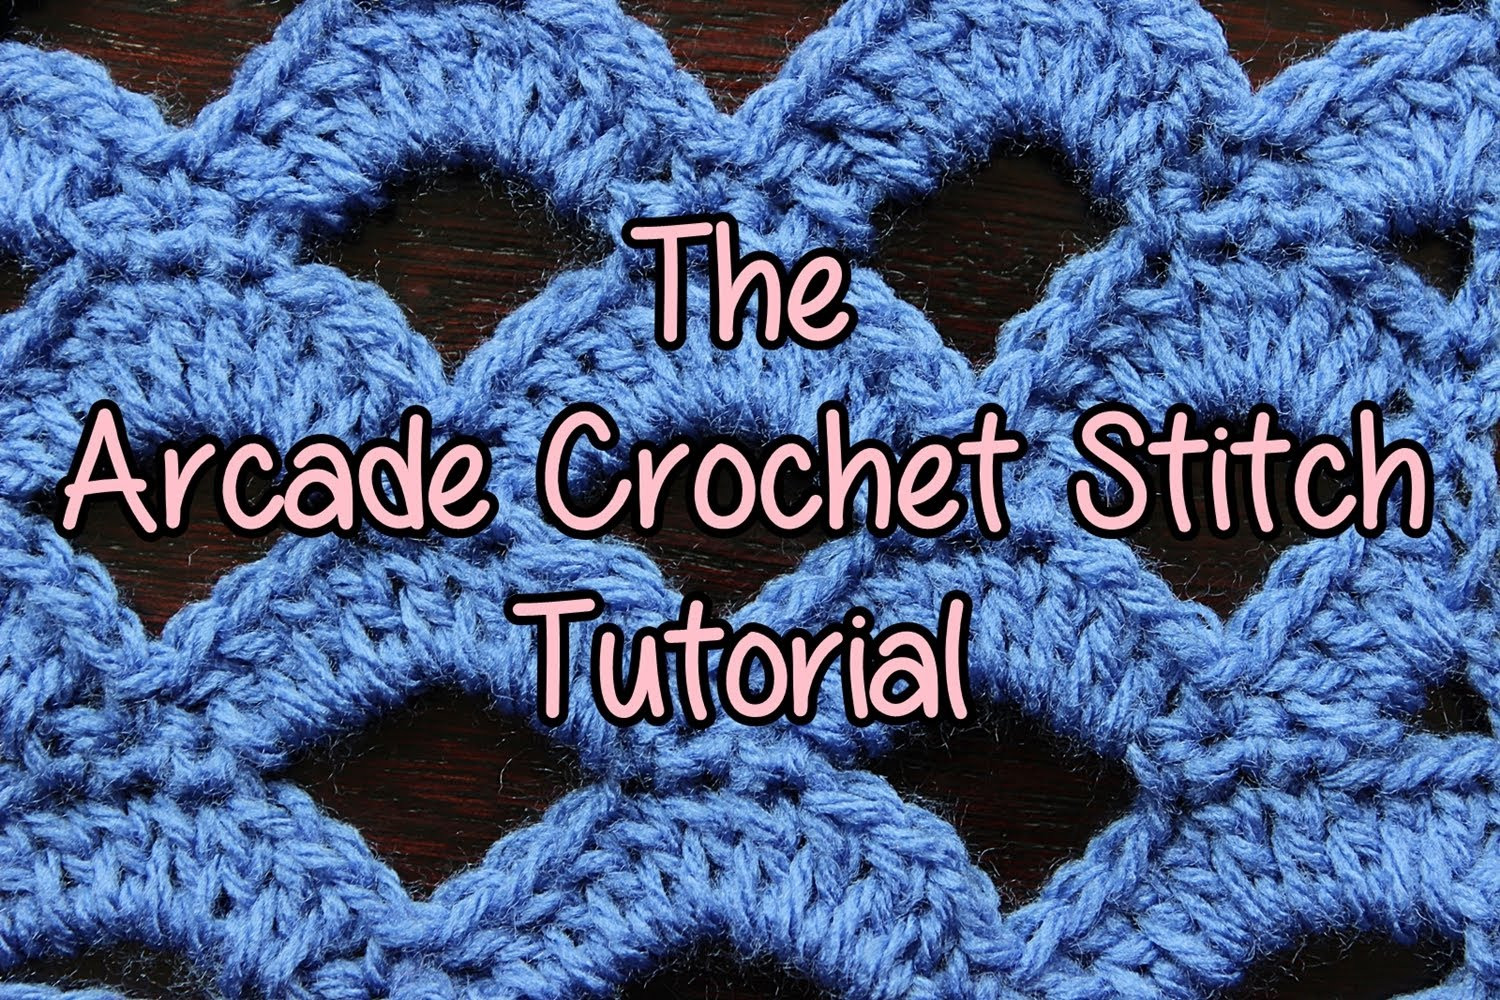 Different Crochet Stitches Beautiful [video Tutorial] Learn A New Crochet Stitch Arcade Stitch Of Amazing 46 Images Different Crochet Stitches